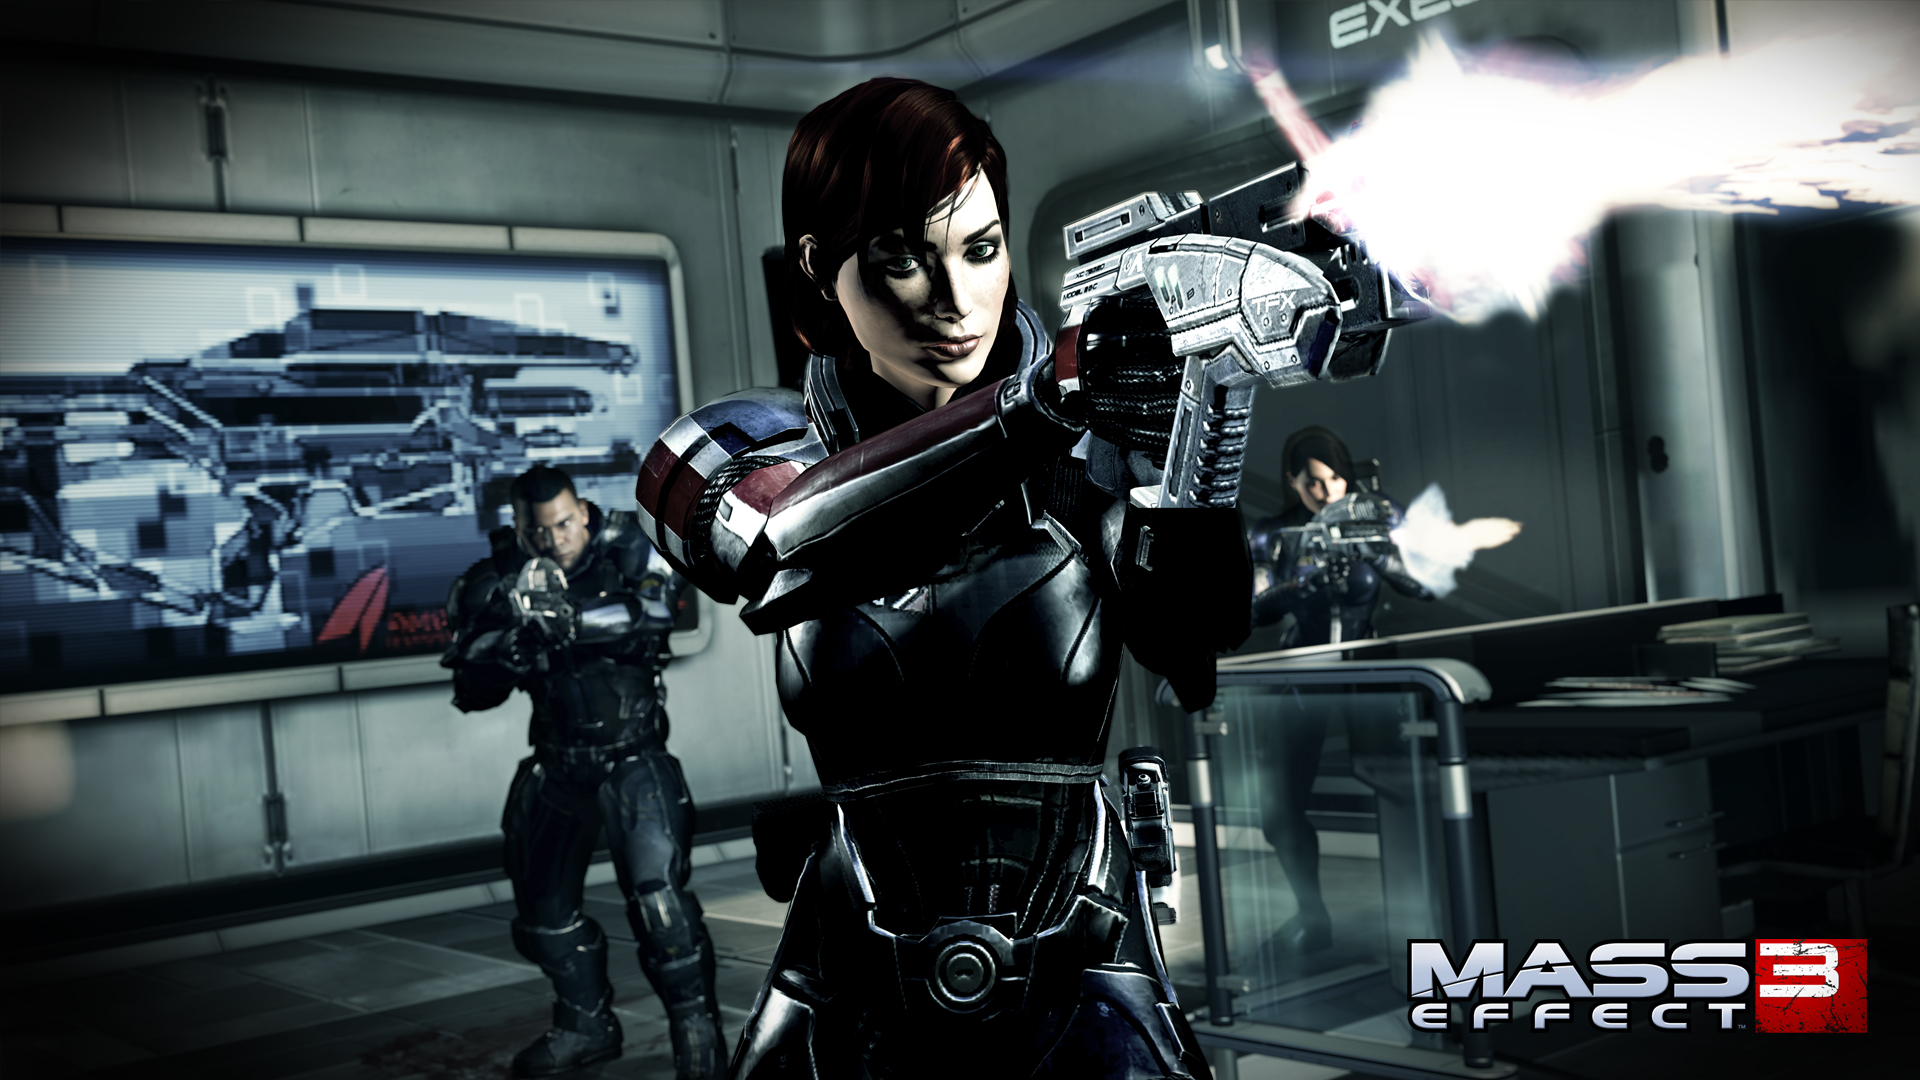 Mass effect 3 ending controversy